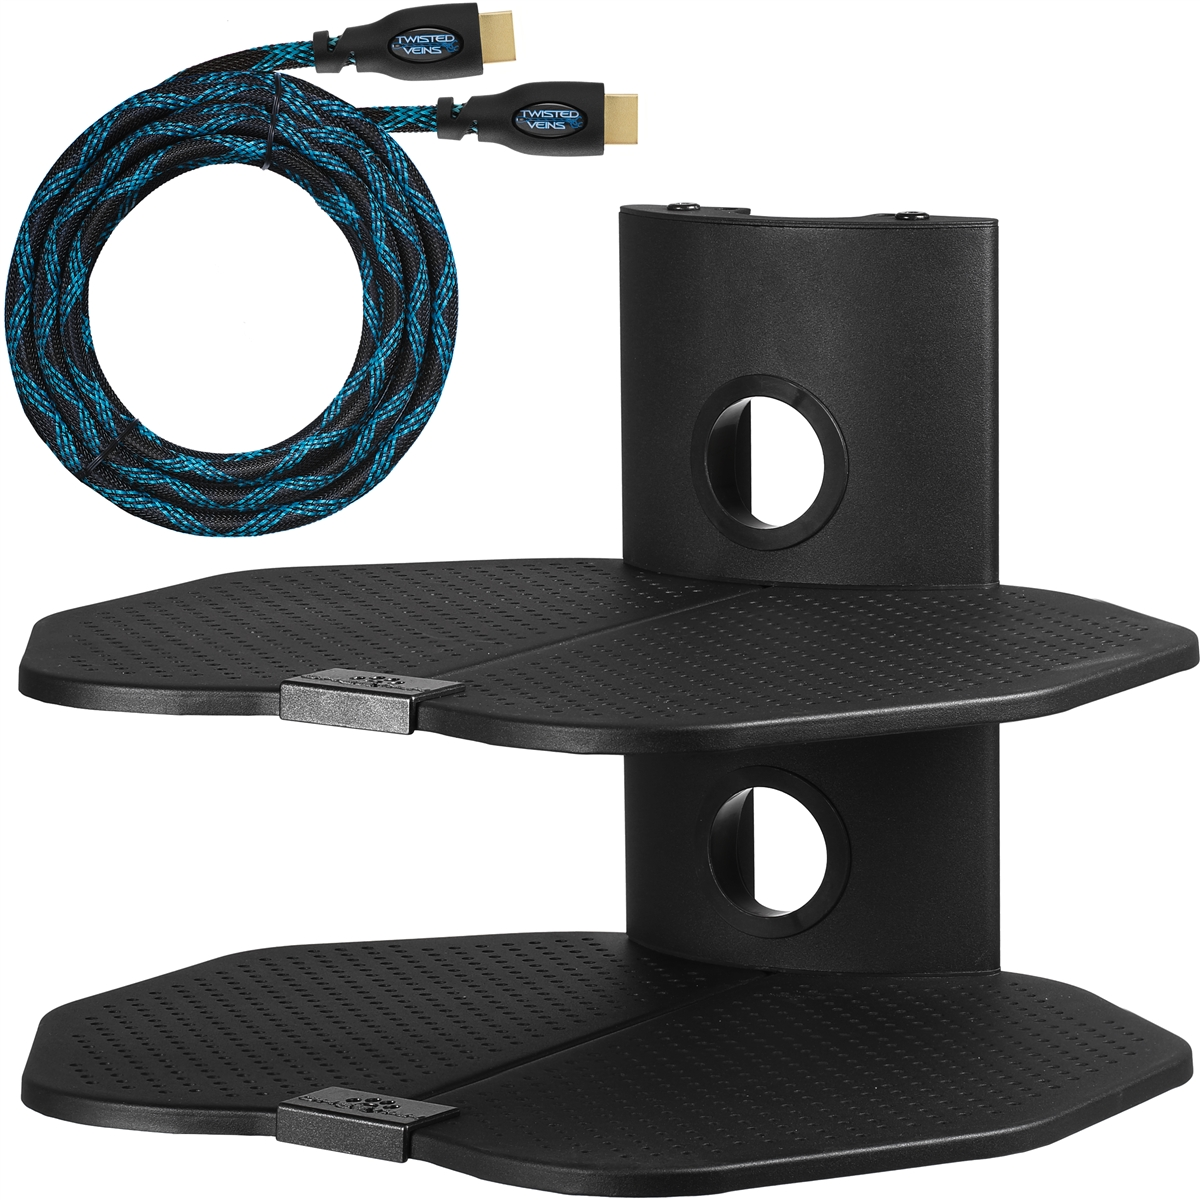 Cheetah Mounts As2b 2 Shelf Tv Component Wall Mount